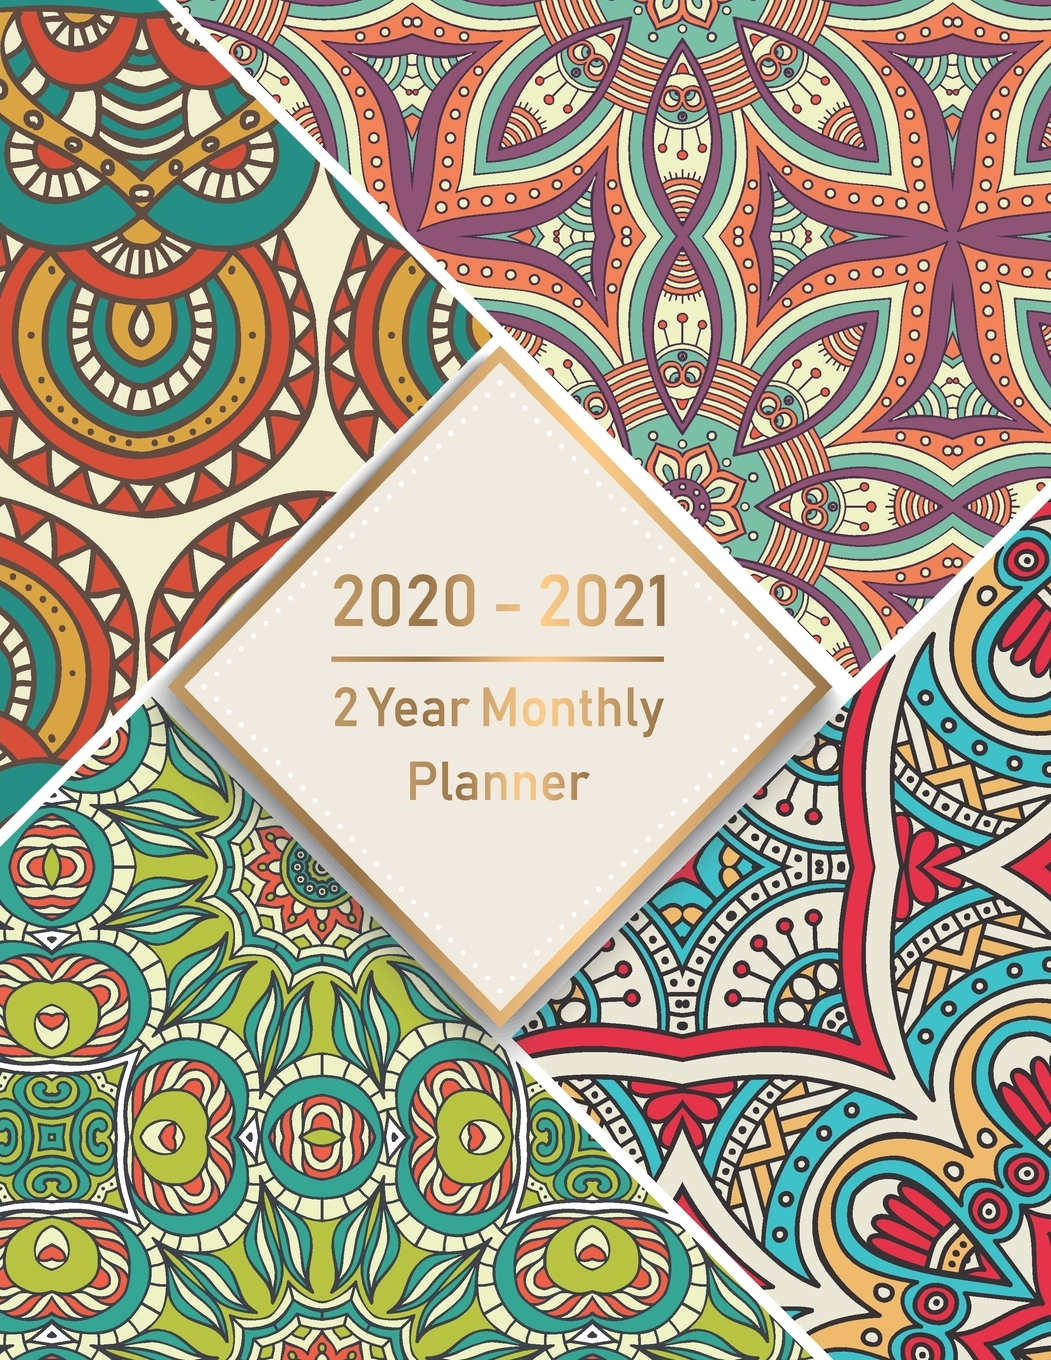 2020-2021 Monthly Planner: 2 Year Monthly Planner 2020-2021: Monthly  Schedule Organizer, Agenda Planner For The Next Two Years, 24 Months  Calendar, for 2021-2021 Two Year Monthly Planner: